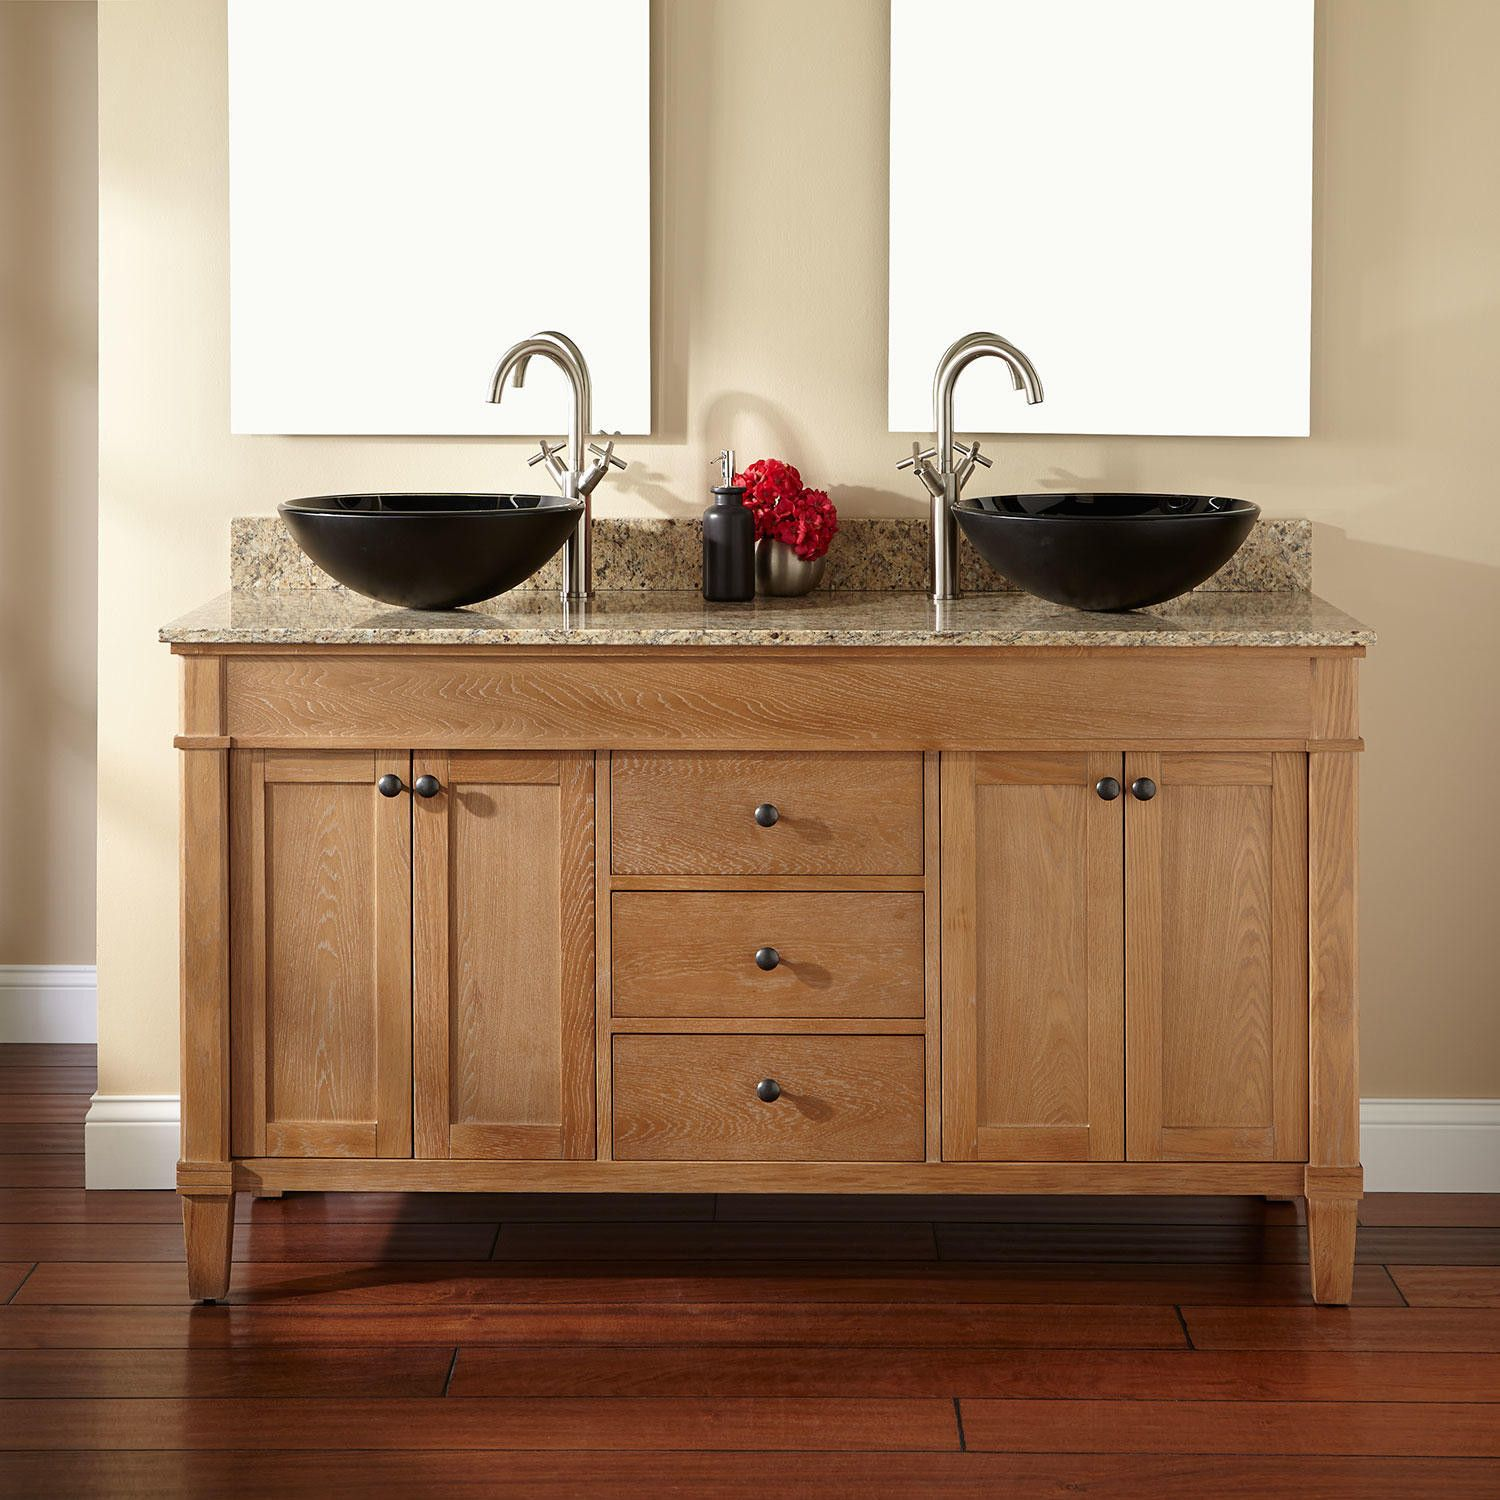 20 Vessel Sink Vanity Cabinet Only Kitchen Cabinets Countertops